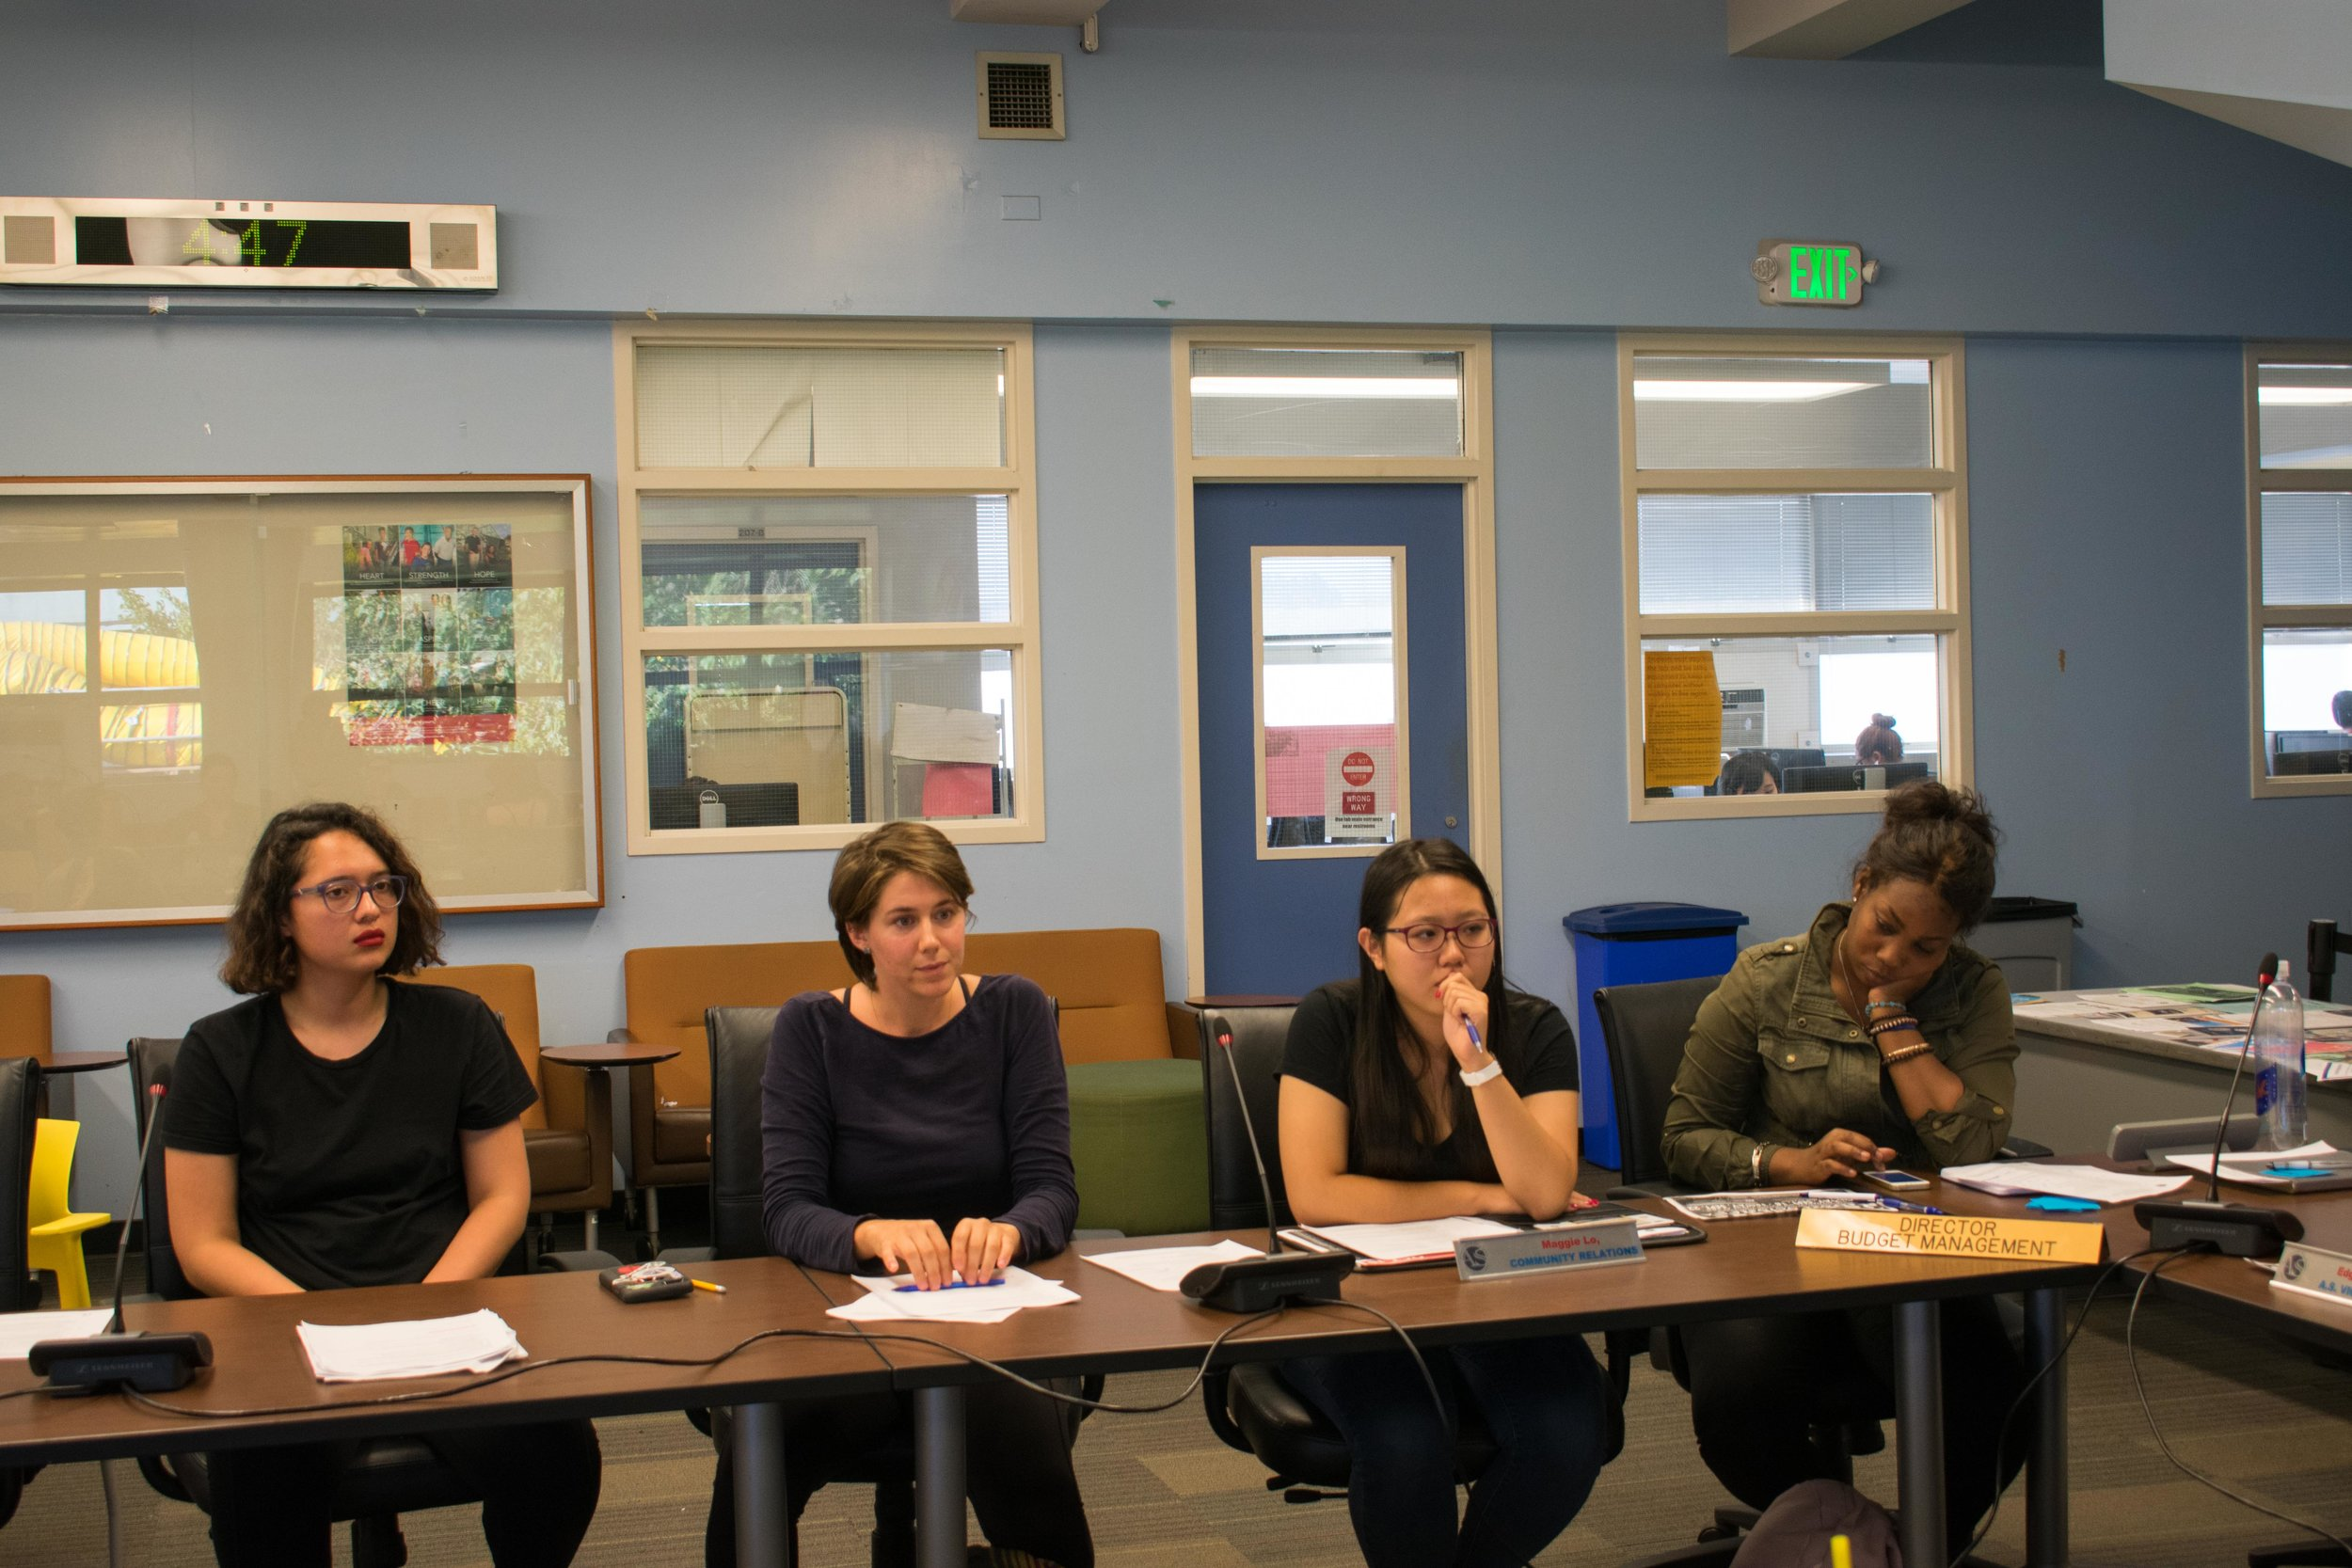 From the left, Stephanie Hernandez and Ana Laura Paiva sit alongside the rest of the board in the new positions of Student assistance and publicity respectively. Also pictured is Maggie Lo, director of community relations and director of budget management, Charlene Alex Boyd at Santa Monica College in Santa Monica, California. (Photo by Ethan Lauren)